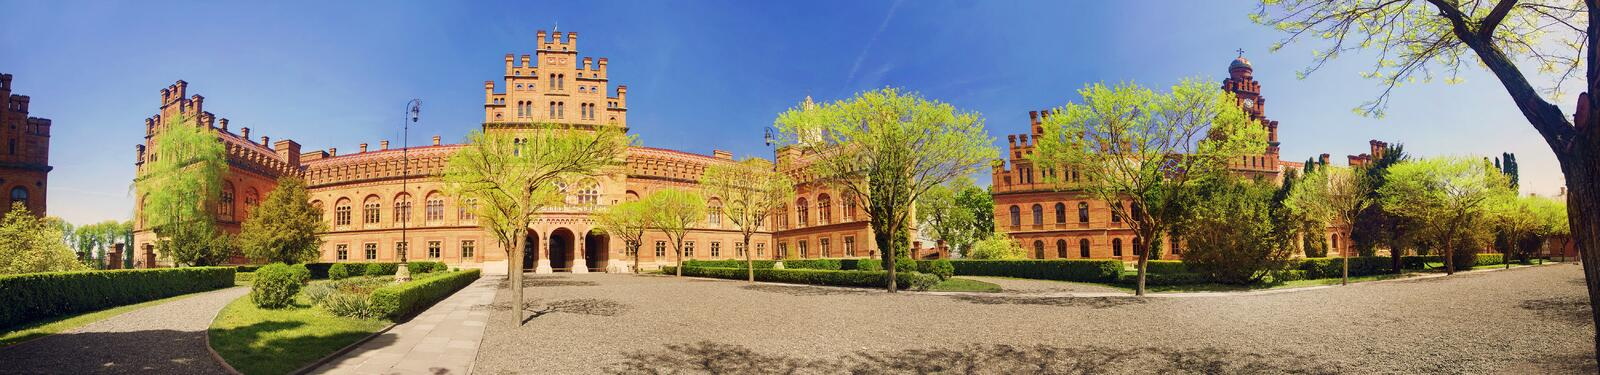 Chernivtsi National University. Yuriy Fedkovych  is the leading Ukrainian institution for higher education in northern Bukovina, in Chernivtsi, a city in royalty free stock photo